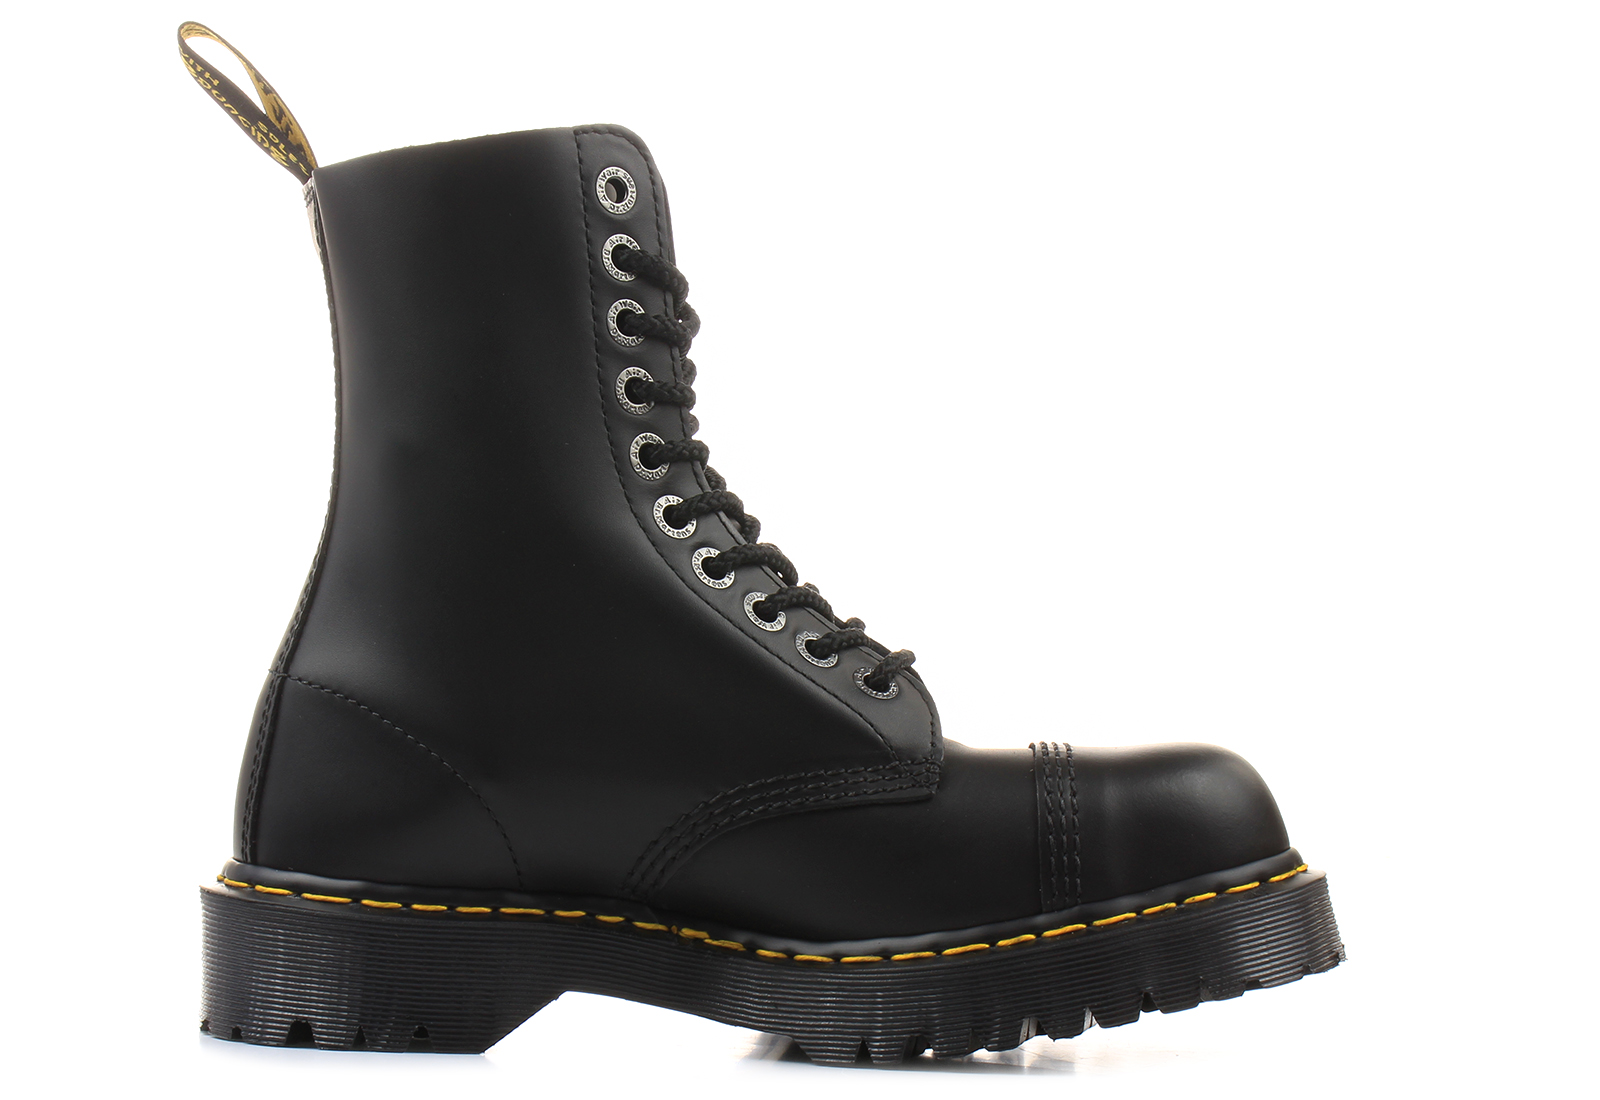 Dr Martens Boots - 8761 - 10 Eye Boot - DM10966001 - Online shop for sneakers, shoes and boots